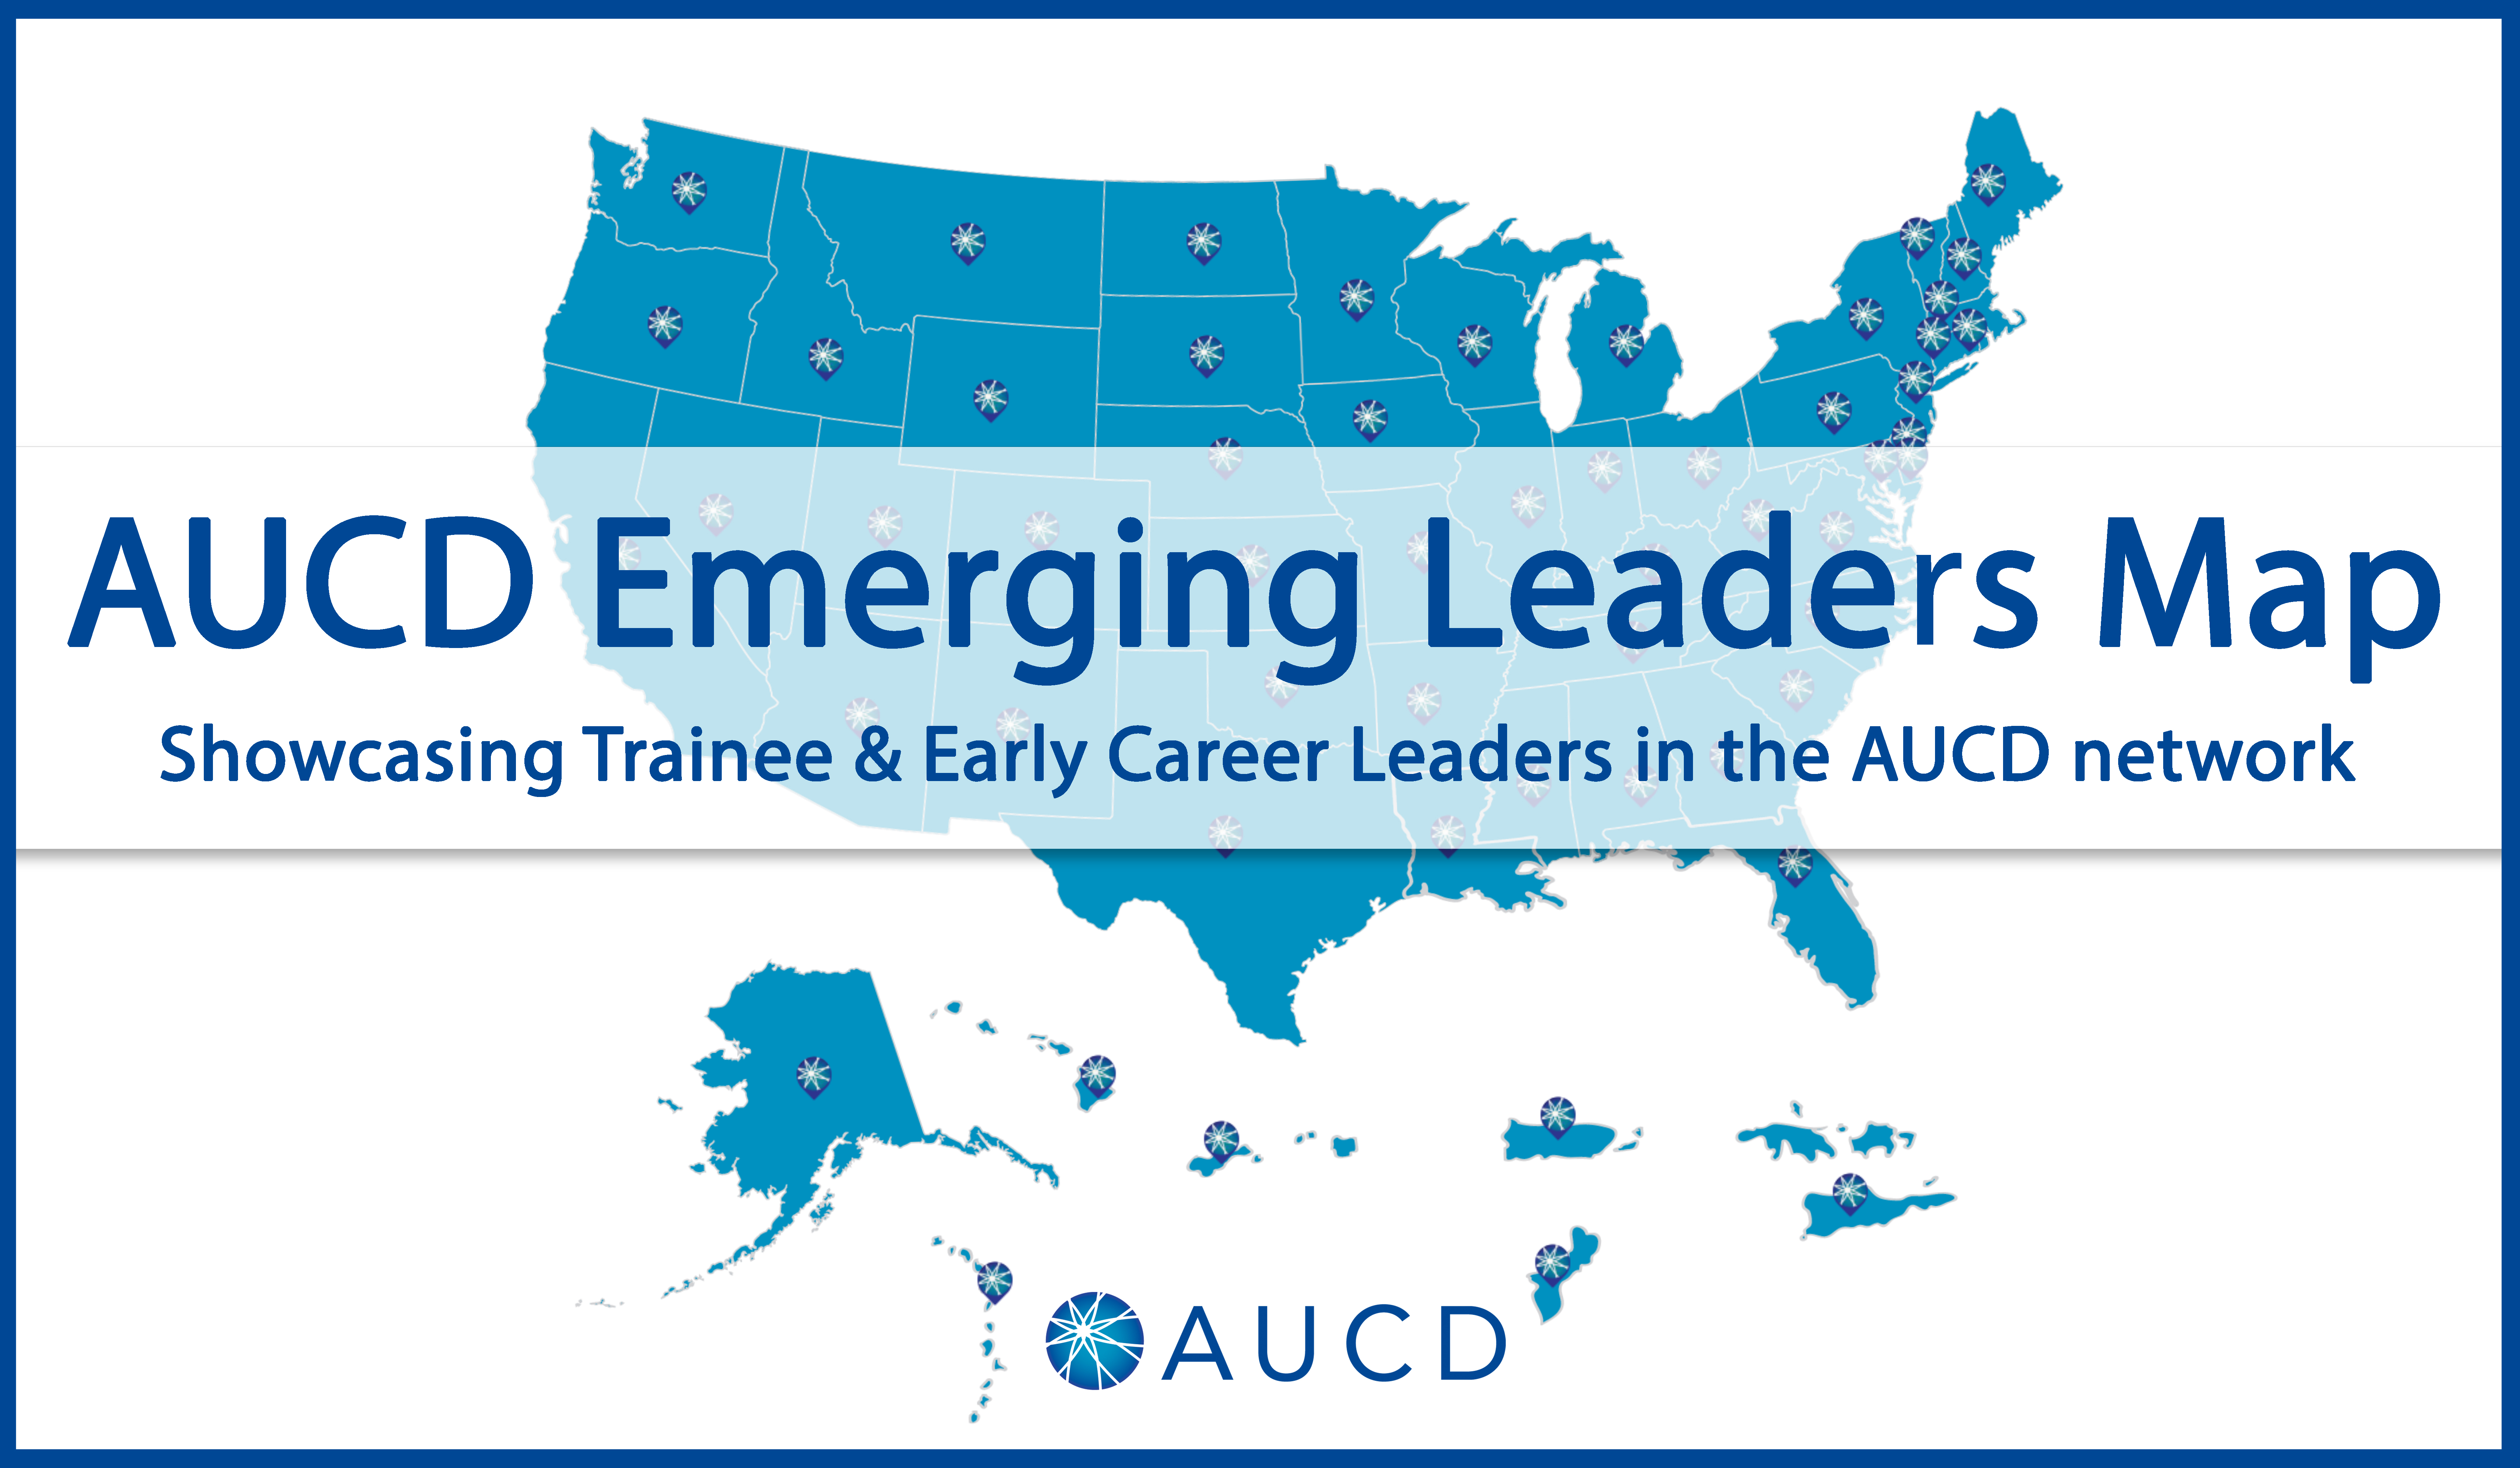 AUCD Emerging Leaders Map